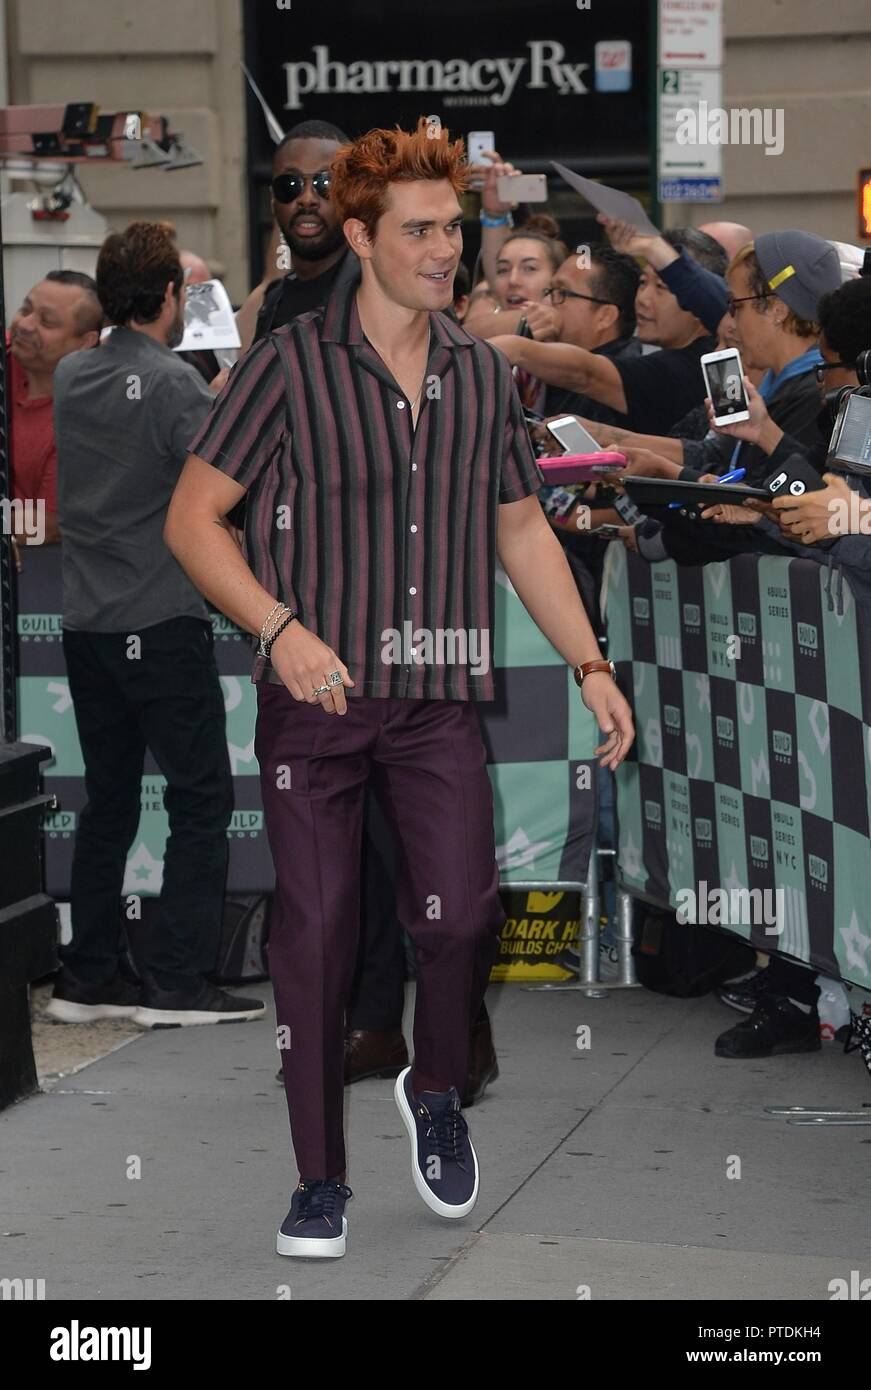 New York, NY, USA. 8th Oct, 2018. KJ Apa out and about for Celebrity Candids - MON, New York, NY October 8, 2018. Credit: Kristin Callahan/Everett Collection/Alamy Live News - Stock Image